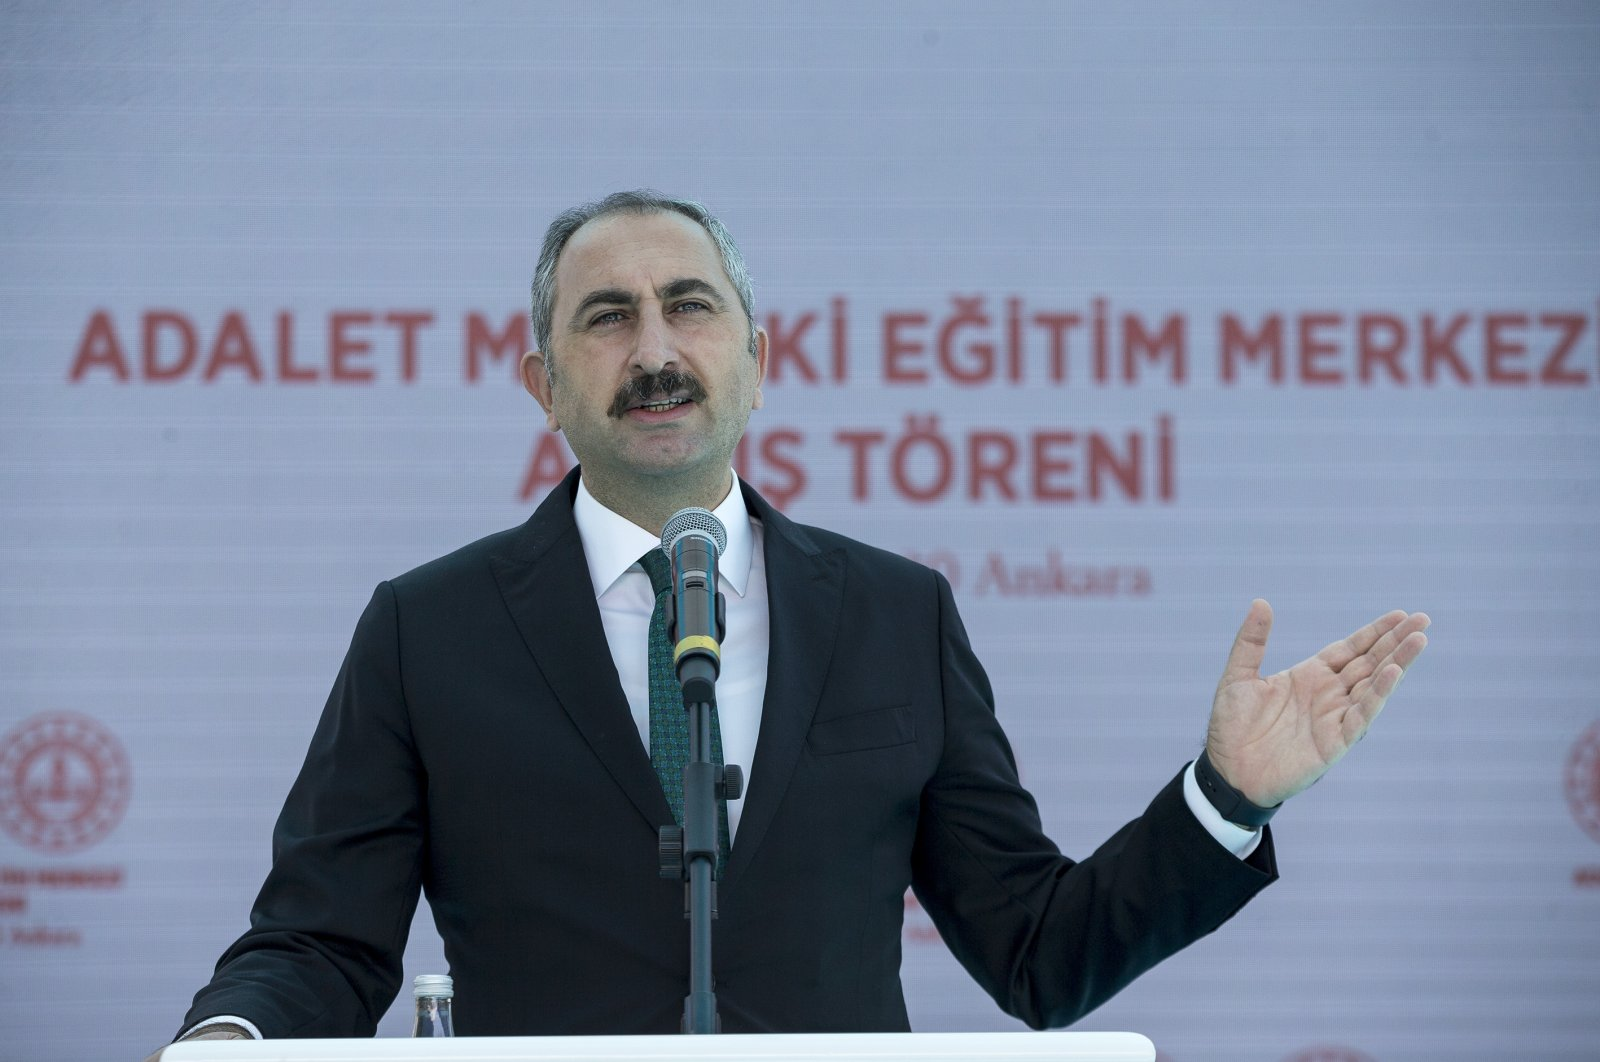 Justice Minister Abdülhamit Gül reacts as he gives a speech during the inauguration of a vocational training center in Ankara, Aug. 14, 2020. (AA Photo)